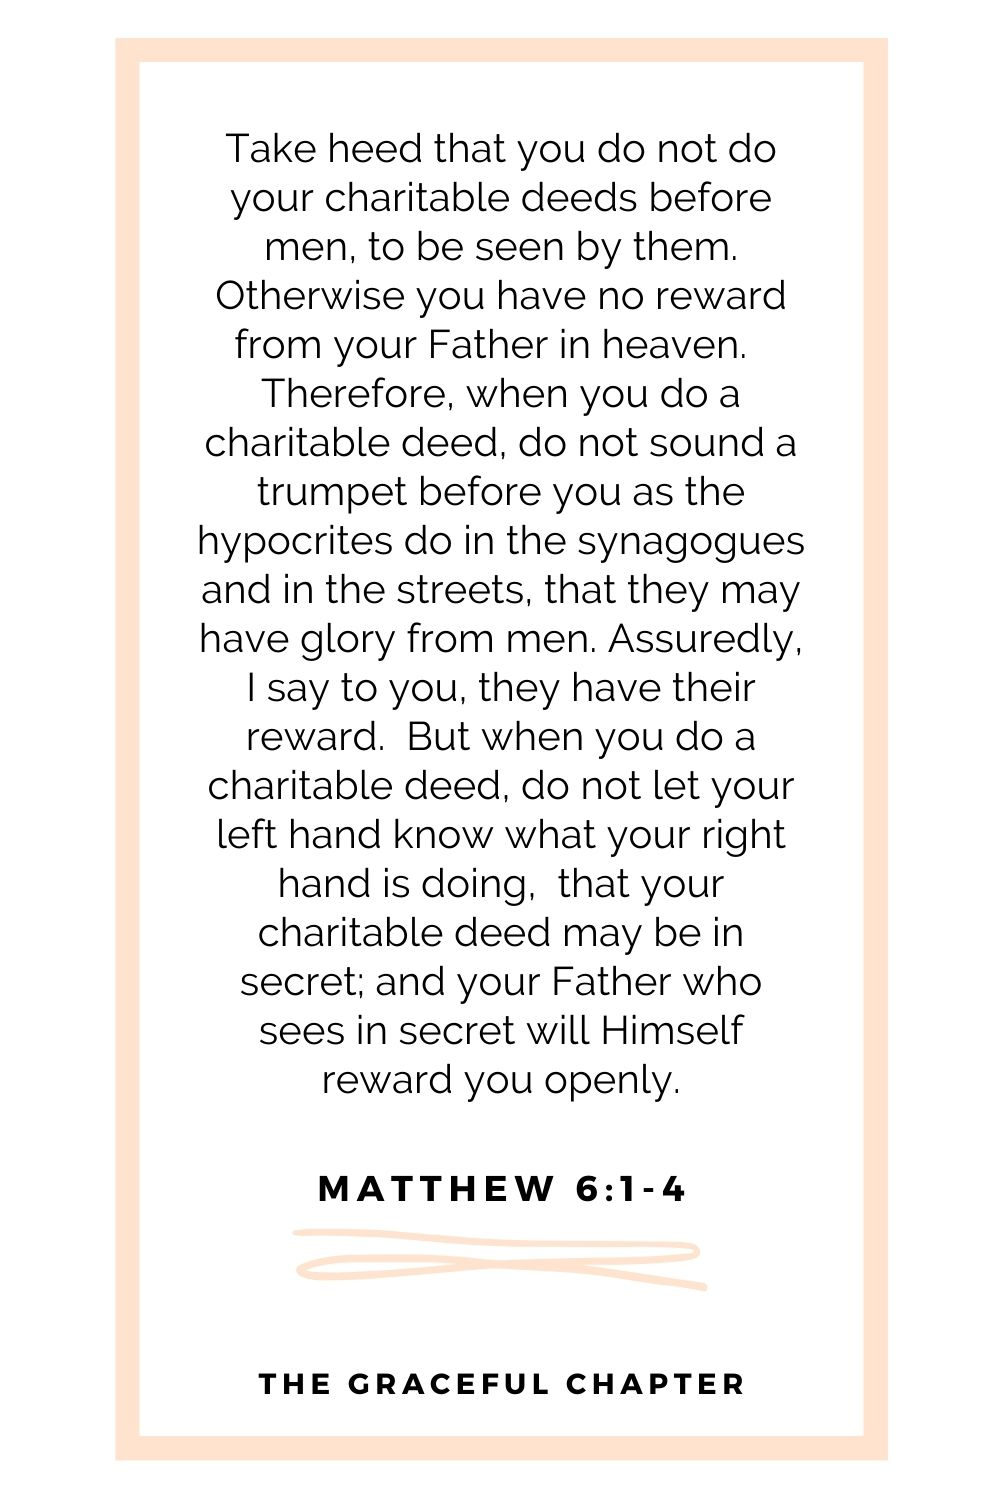 Take heed that you do not do your charitable deeds before men, to be seen by them. Otherwise you have no reward from your Father in heaven.  Therefore, when you do a charitable deed, do not sound a trumpet before you as the hypocrites do in the synagogues and in the streets, that they may have glory from men. Assuredly, I say to you, they have their reward.  But when you do a charitable deed, do not let your left hand know what your right hand is doing,  that your charitable deed may be in secret; and your Father who sees in secret will Himself reward you openly. Matthew 6:1-4